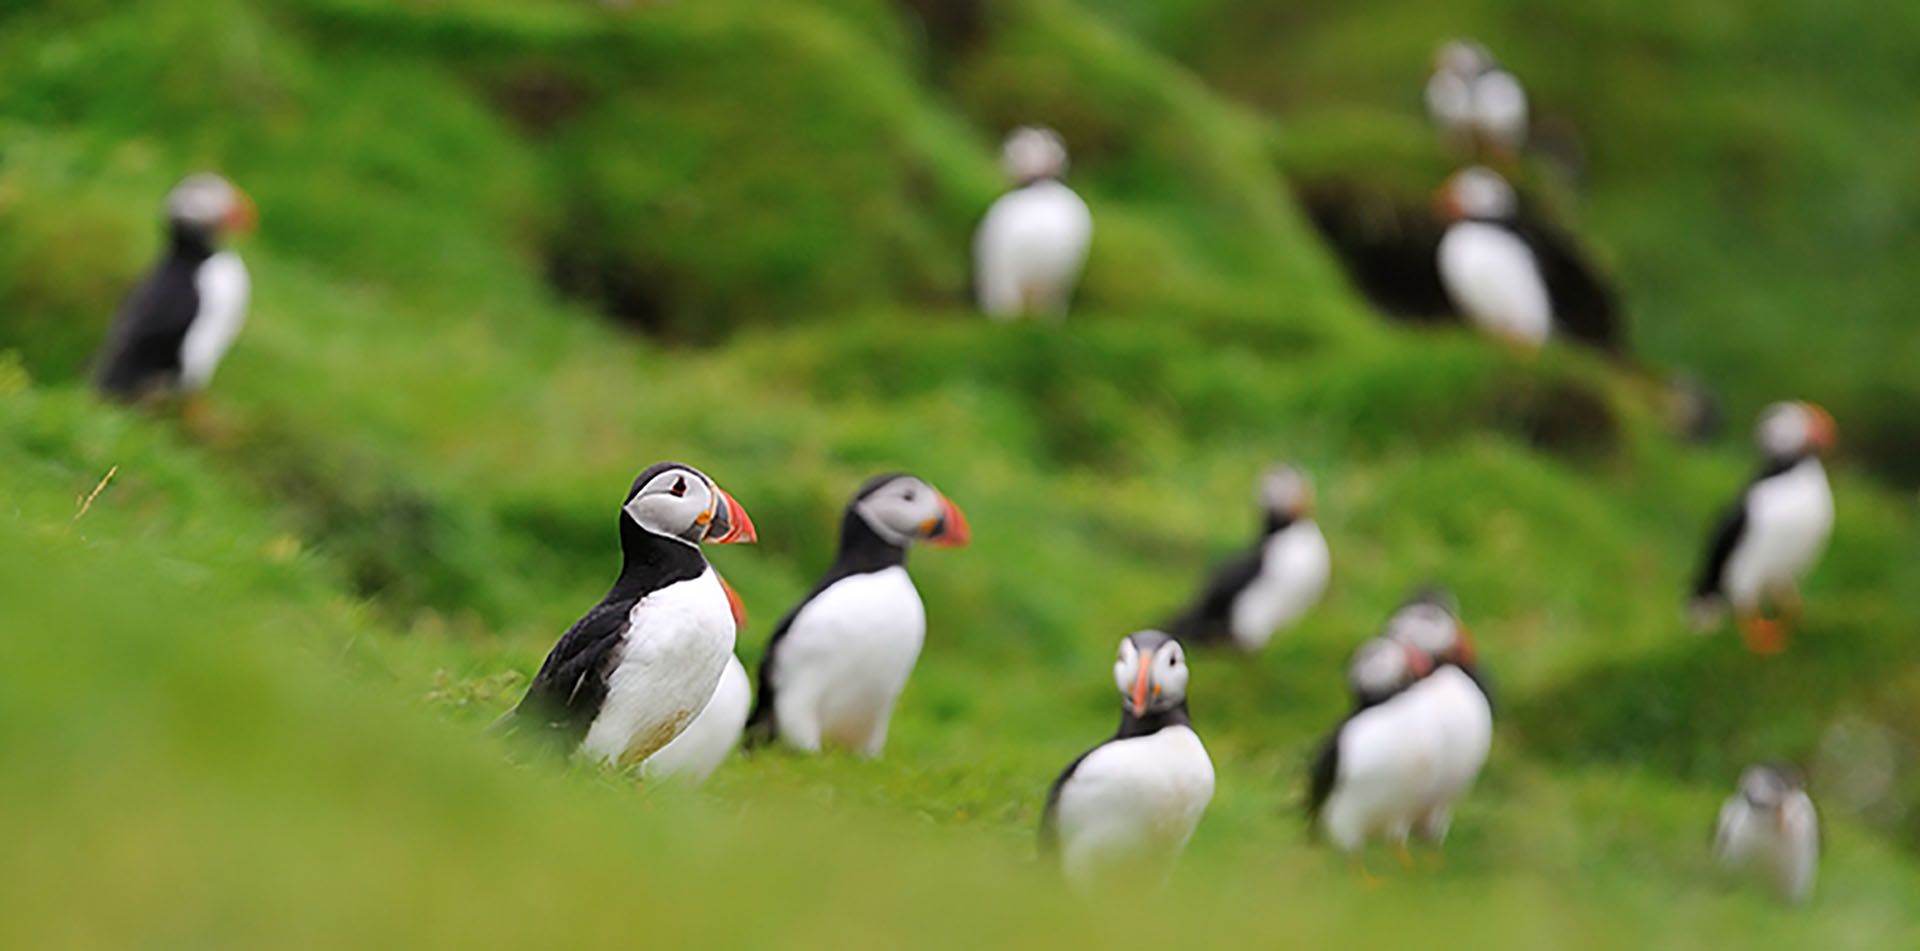 Atlantic Puffins on a Hill, Iceland